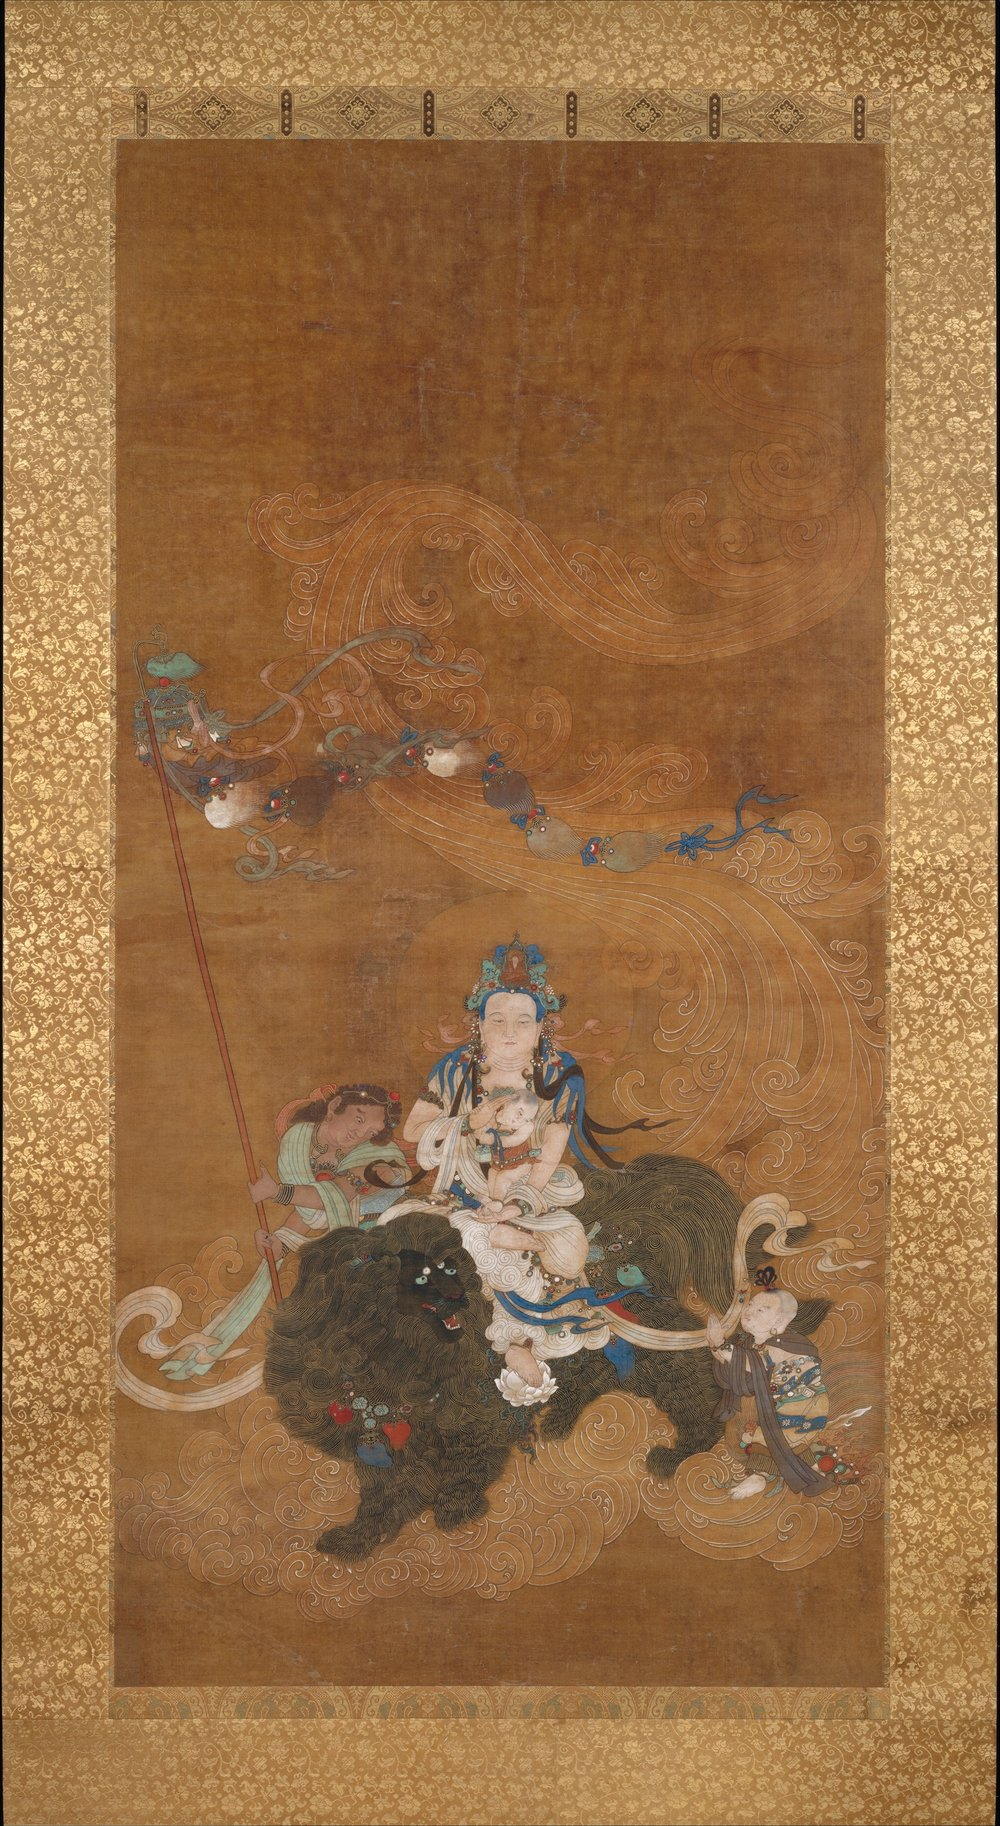 Guanyin Bestowing a Son. Late 16th century. Ming Dynasty. China. Image Courtesy of The Met.